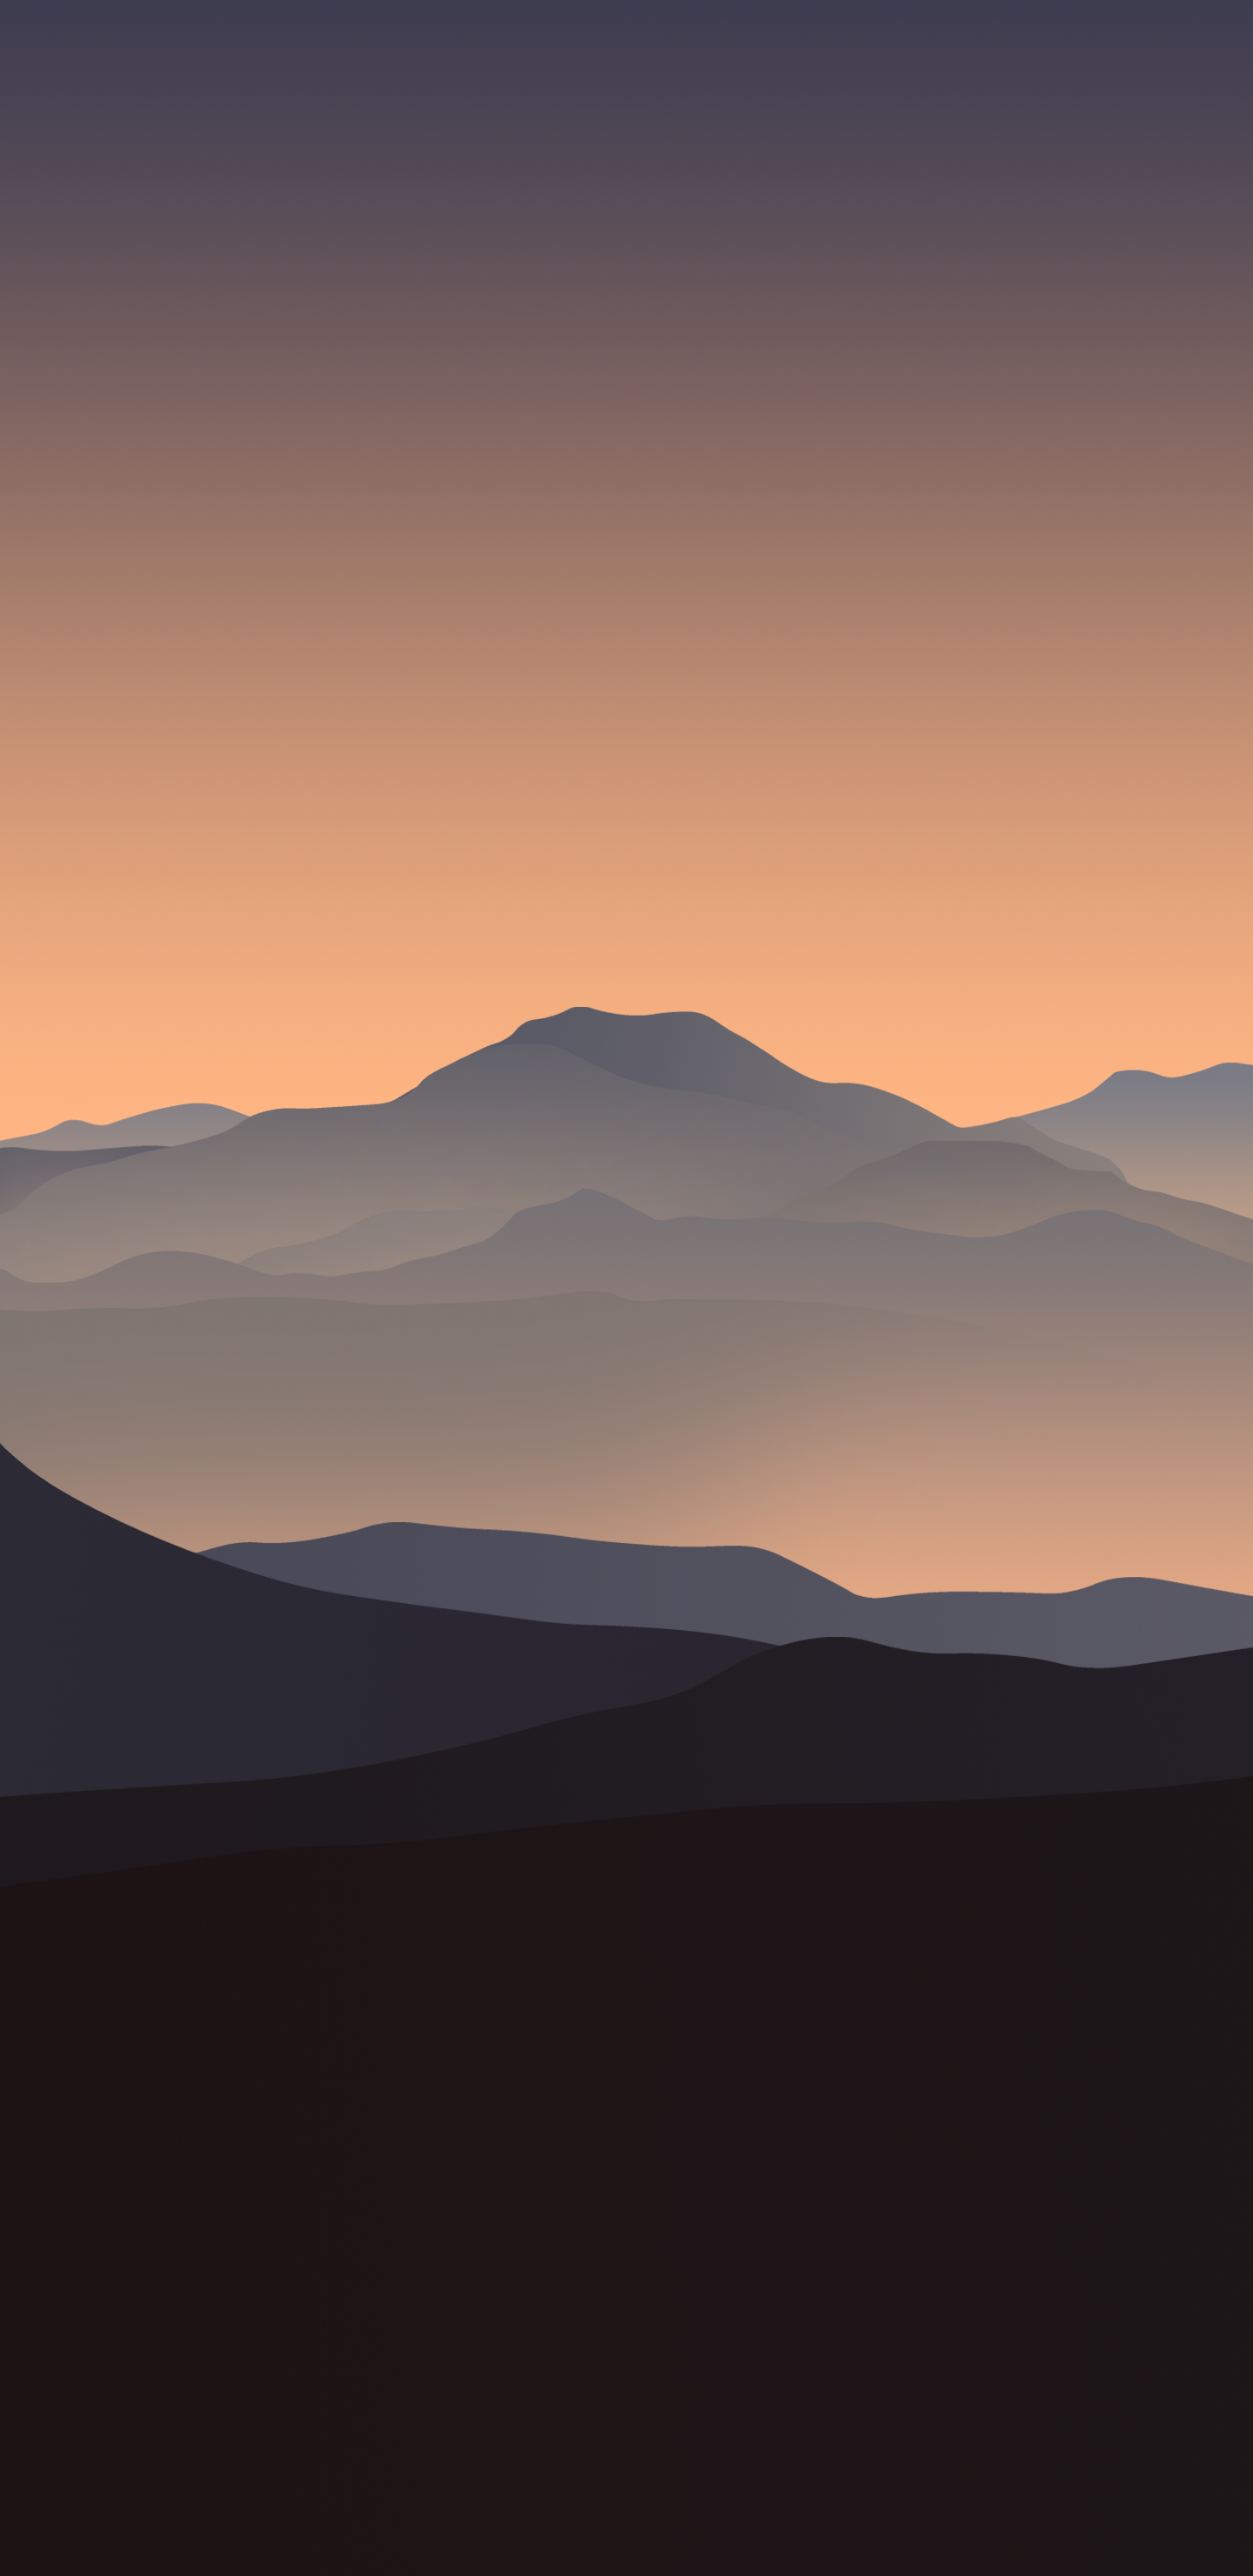 V4ByArthur1992aS iphone mountain wallpaper sunset orange